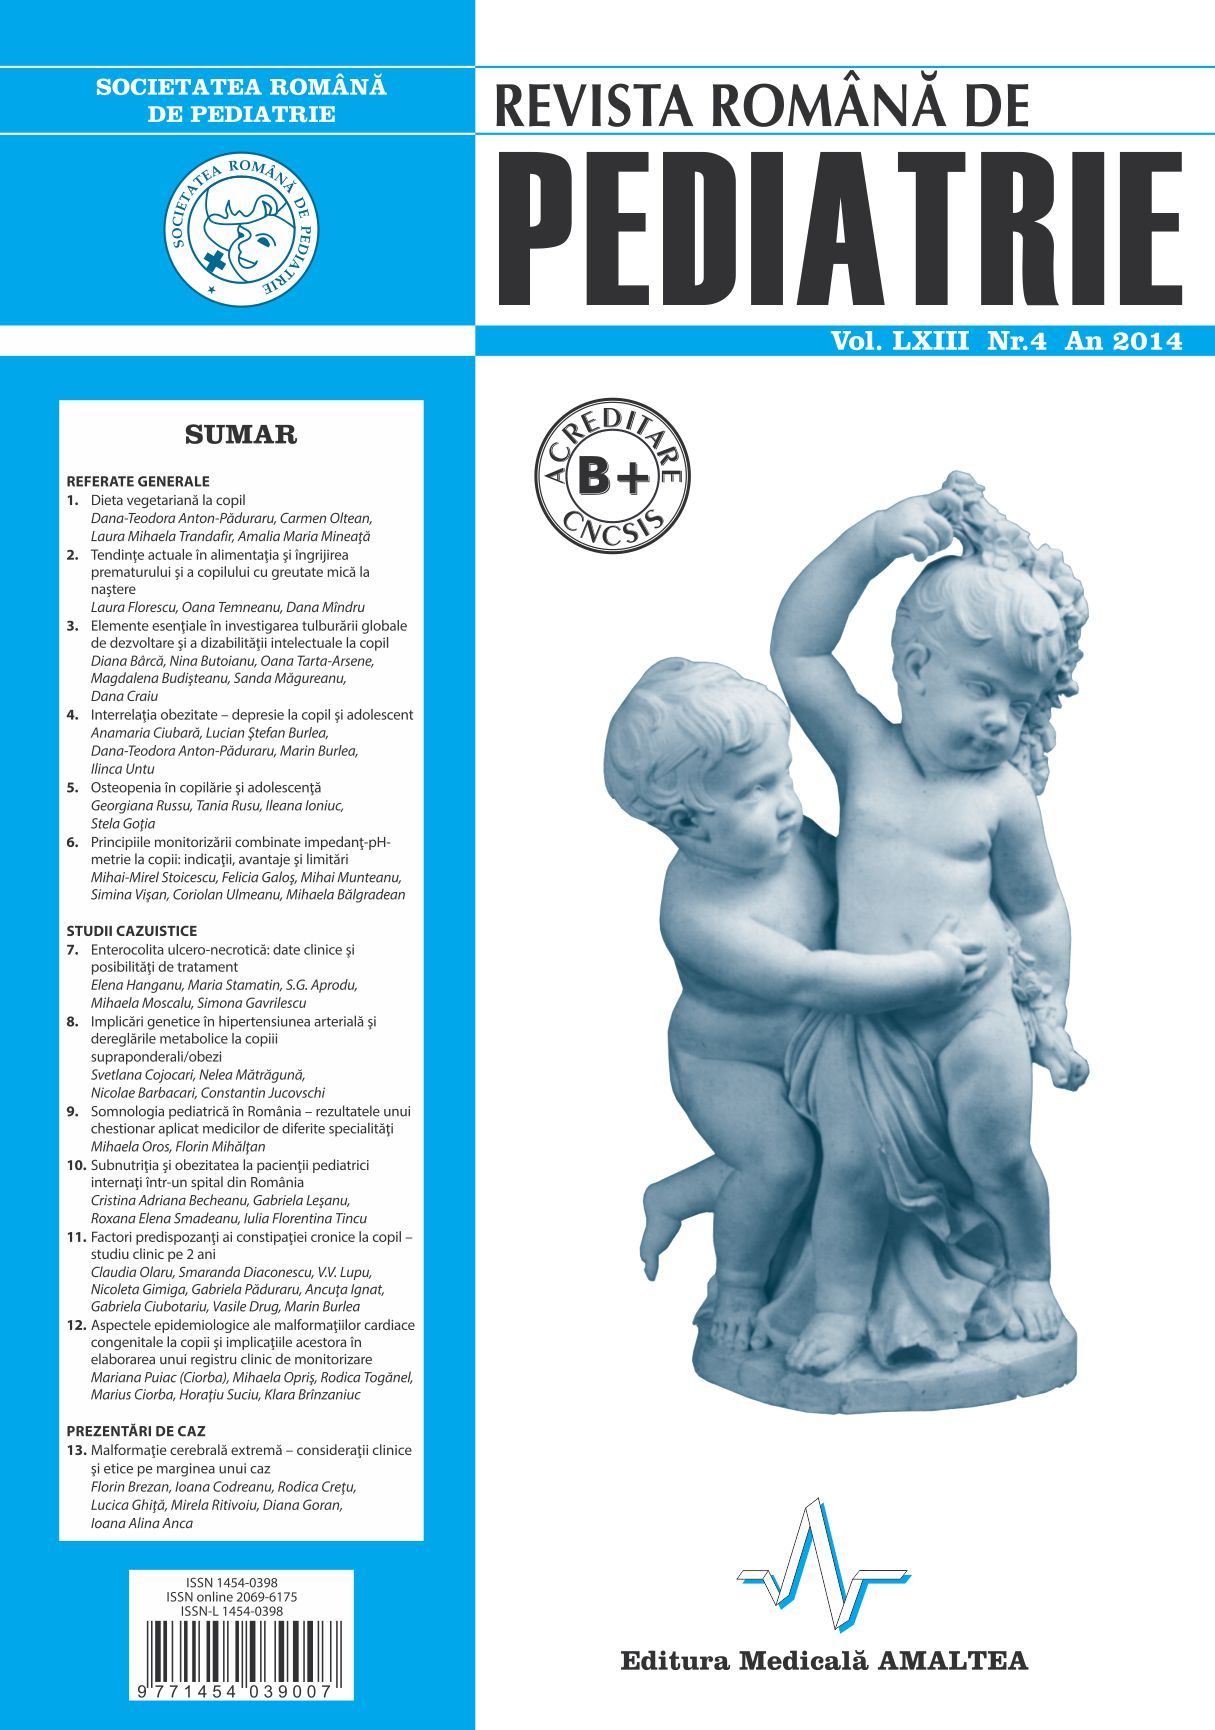 Revista Romana de PEDIATRIE | Volumul LXIII, Nr. 4, An 2014